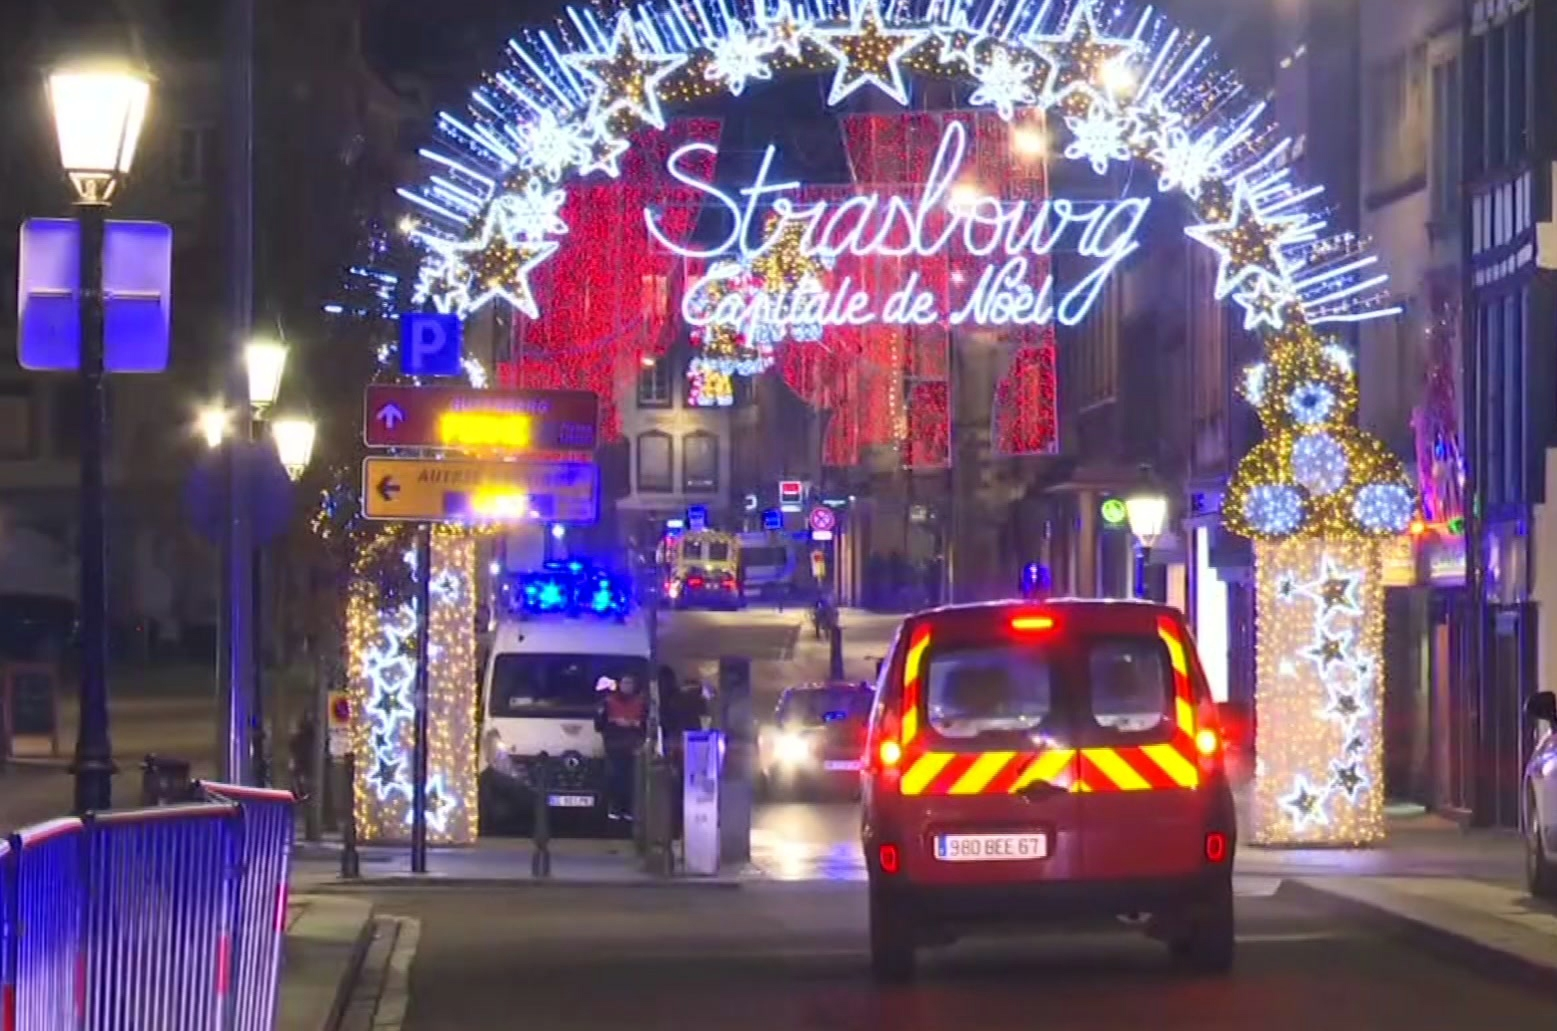 Strasbourg Christmas Market Shooting.Attack At Christmas Market In French City Kills 3 Wounds 12